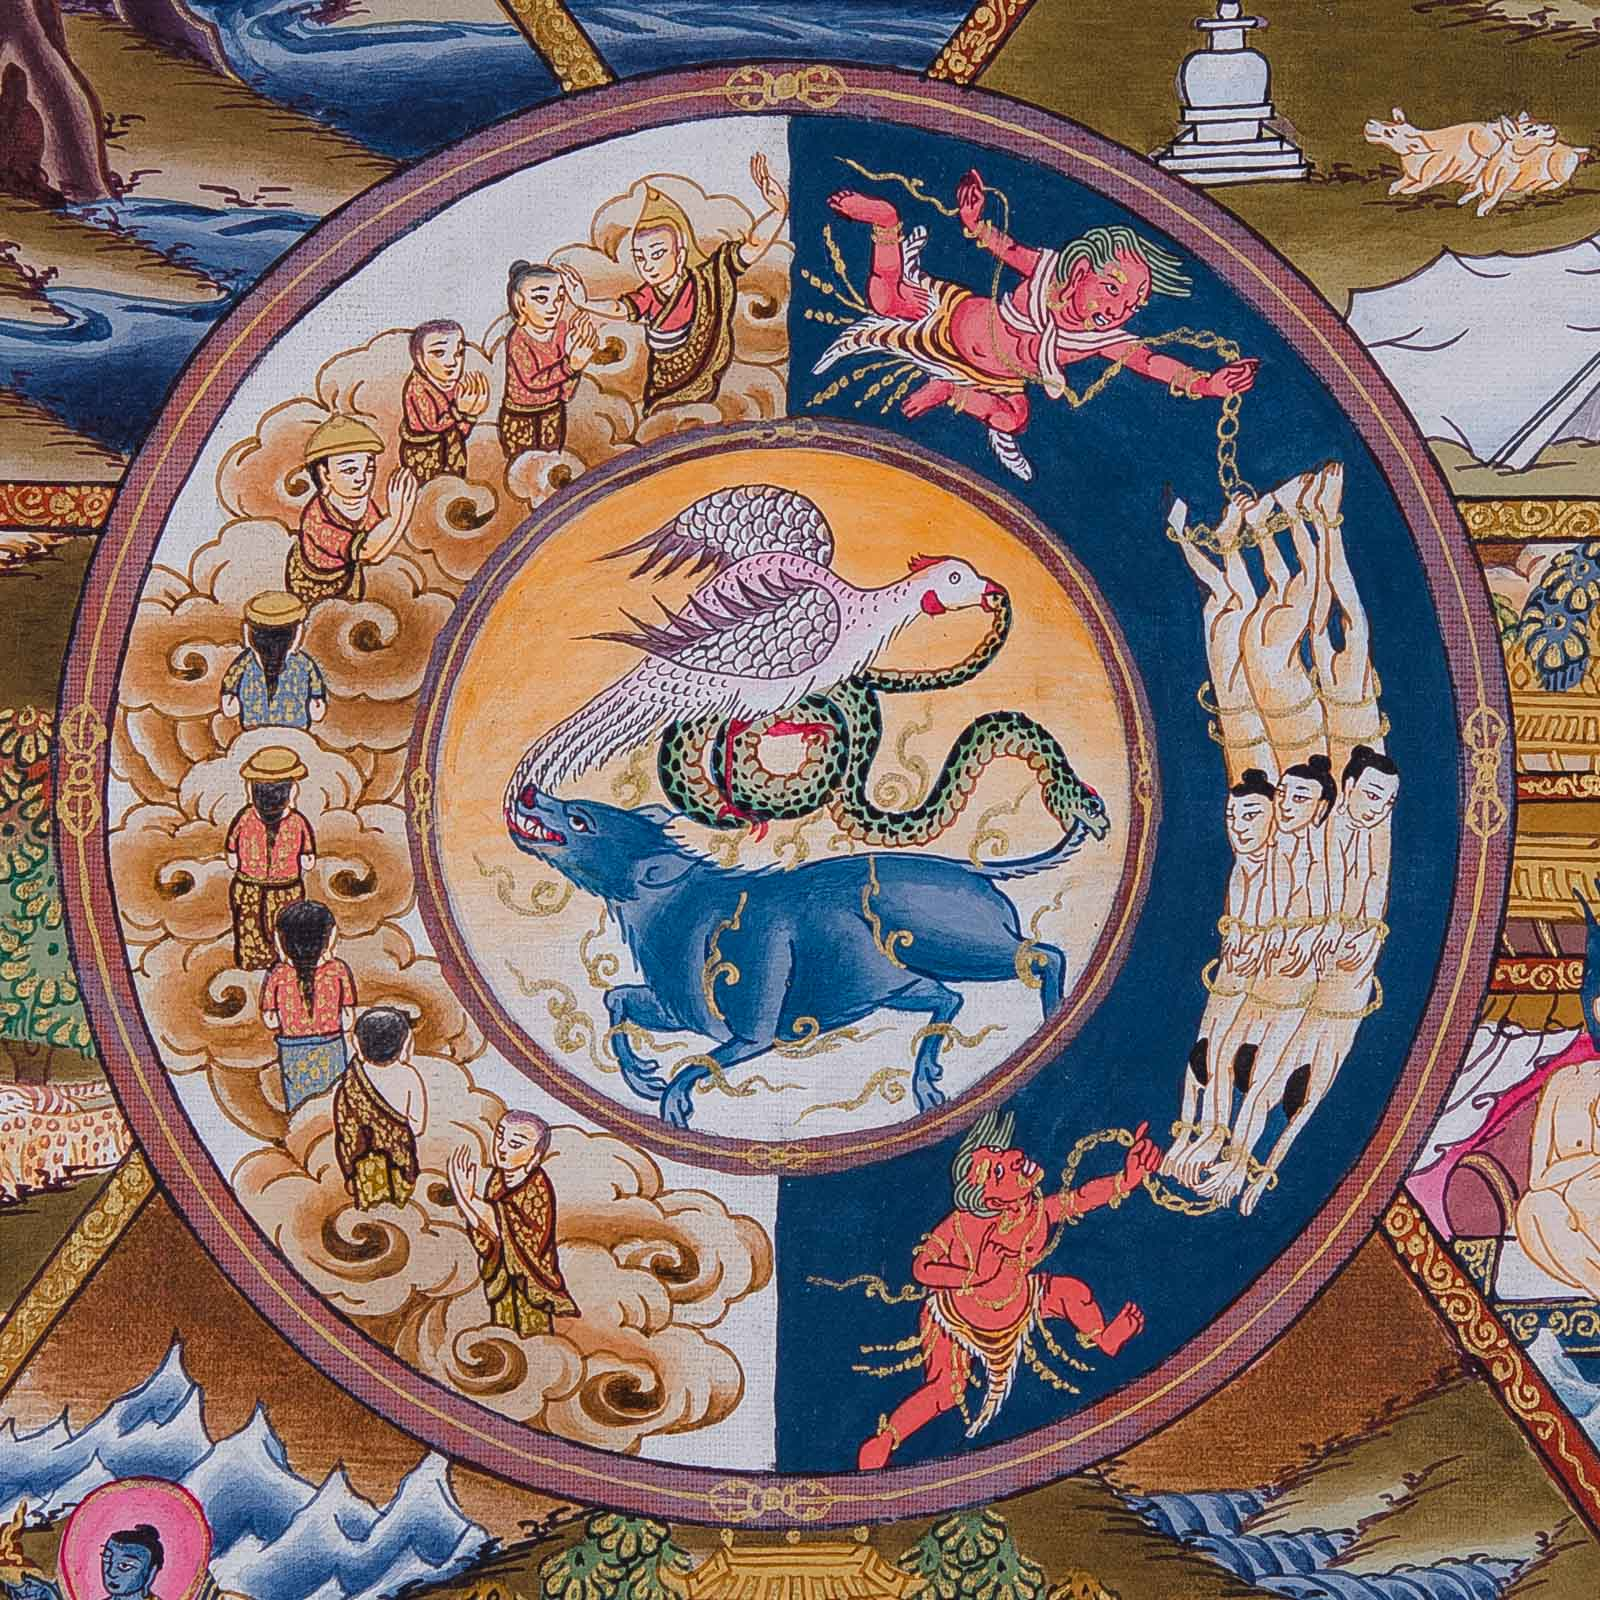 The Wheel of Life - Samsara | Thangka Mandala